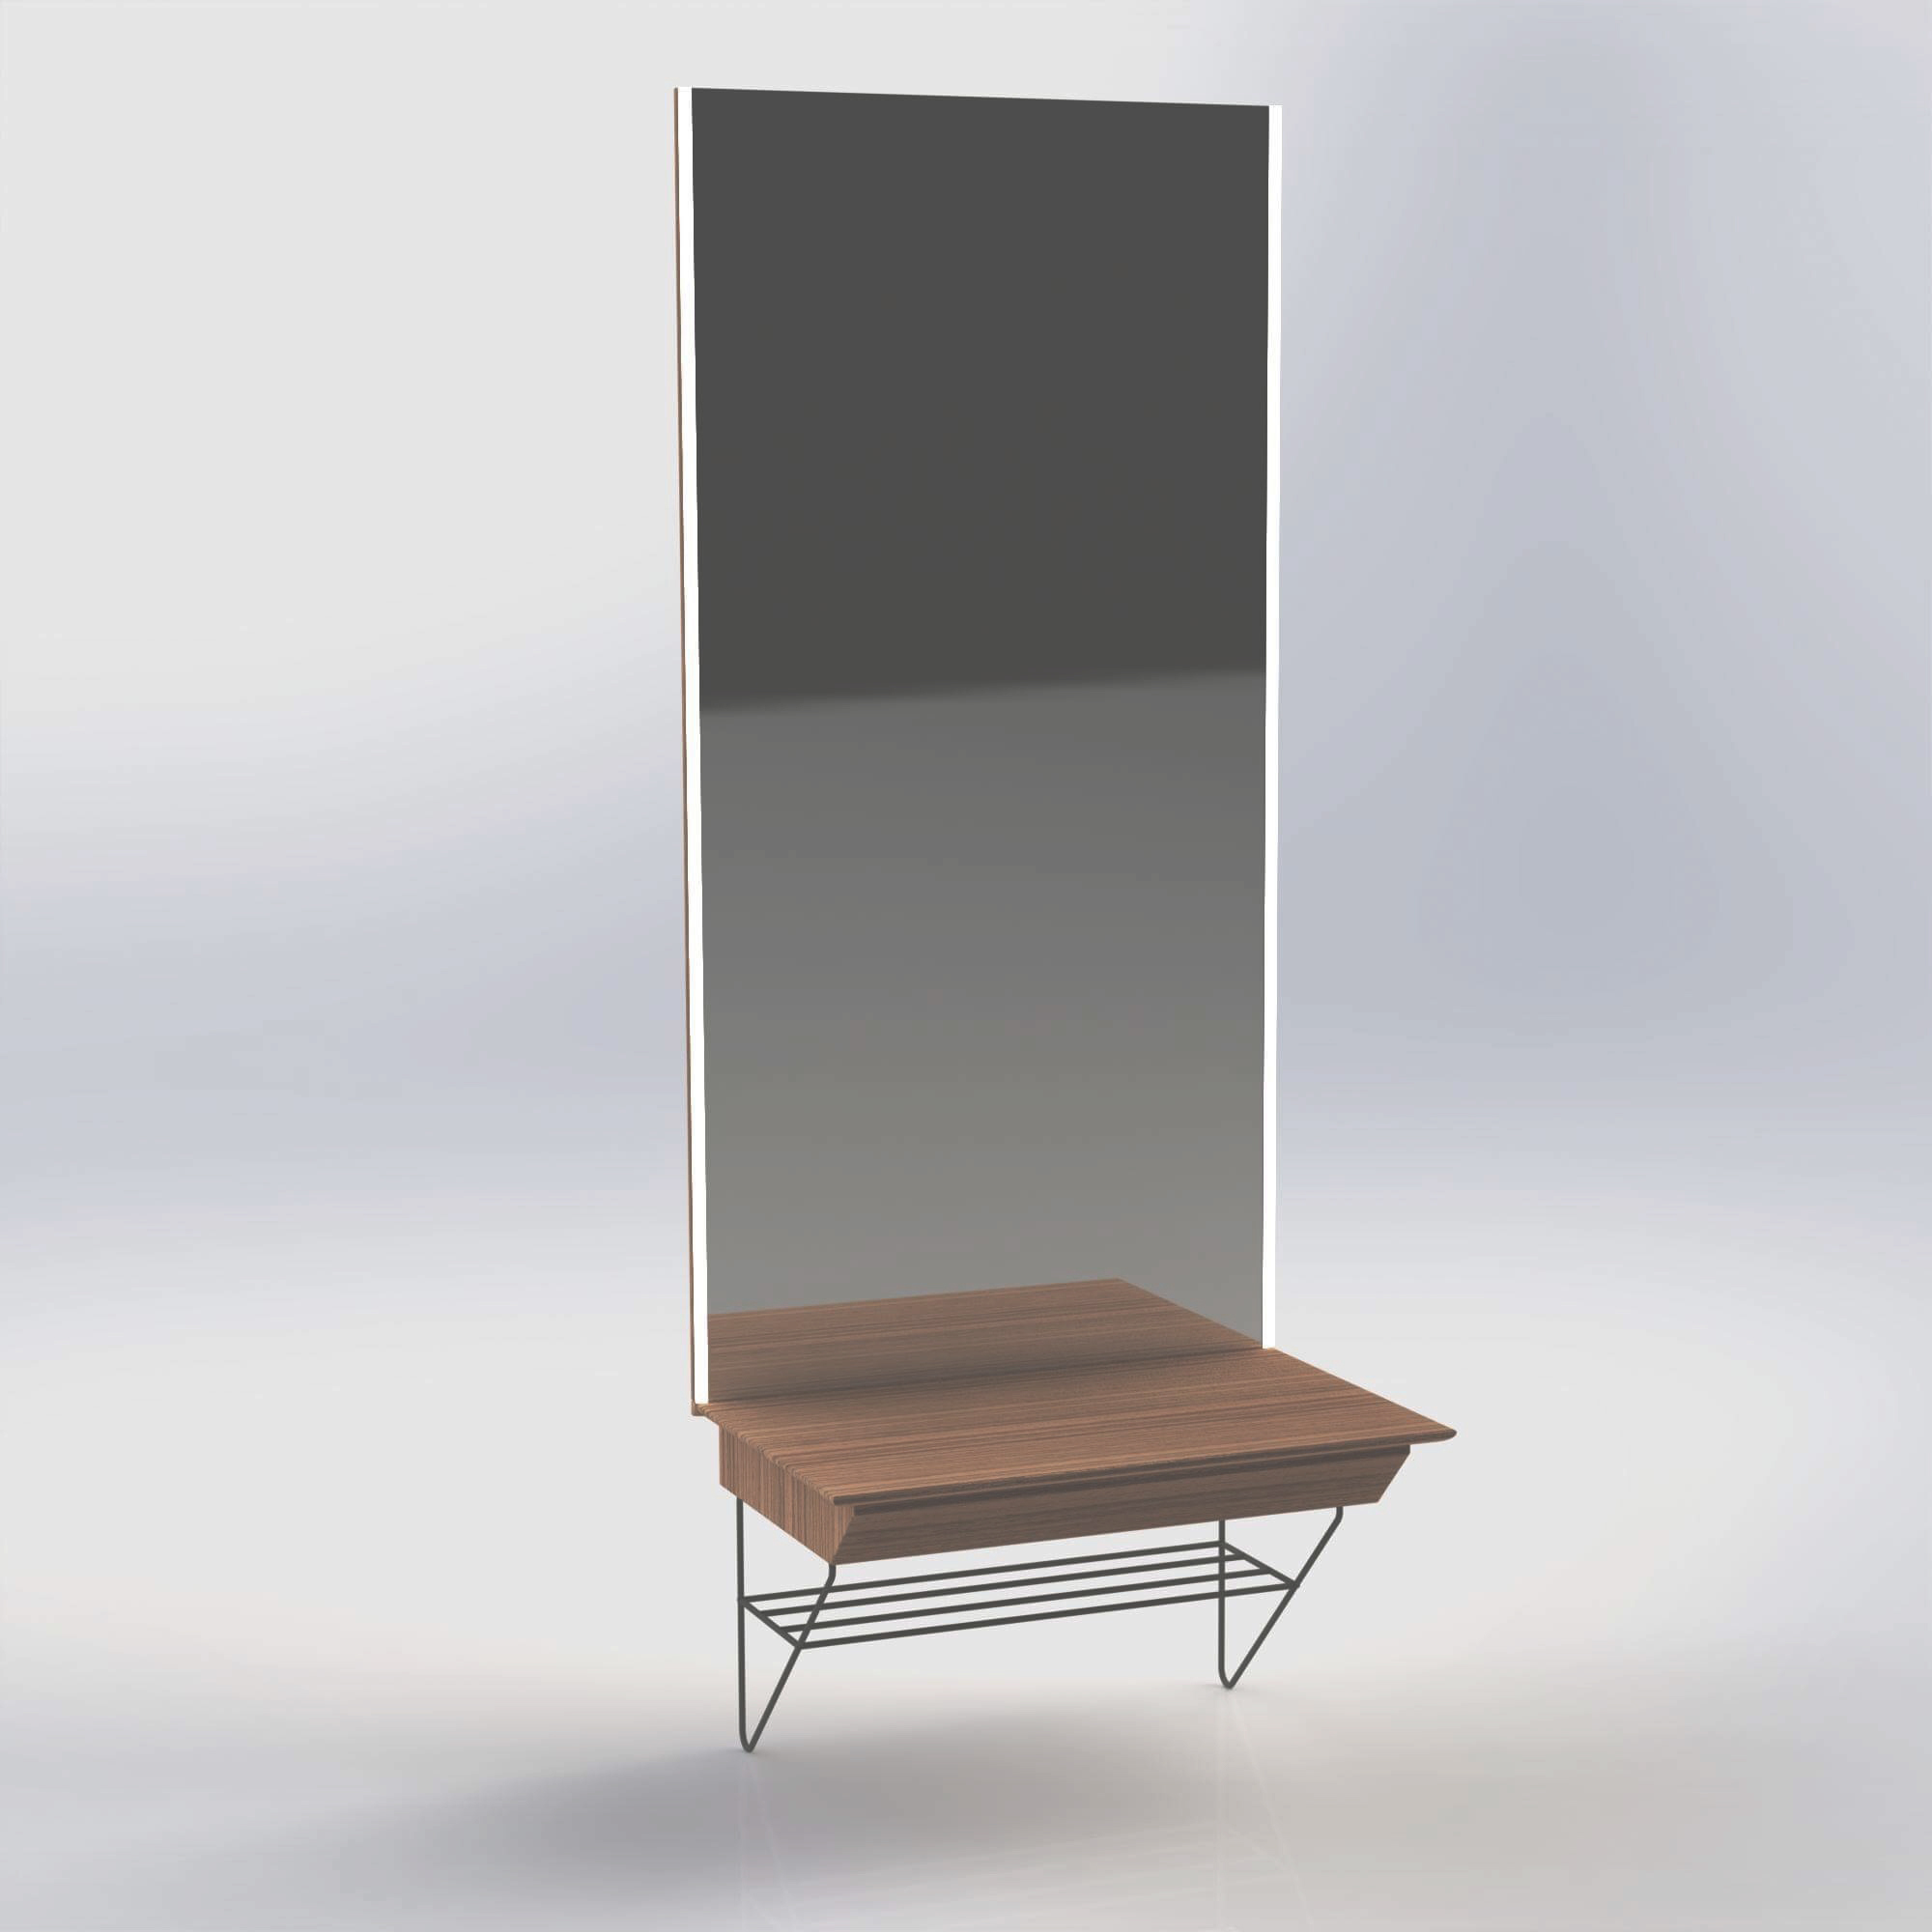 Cabinet with mirror and led stripes made in Solidworks, by Sebastian Galo